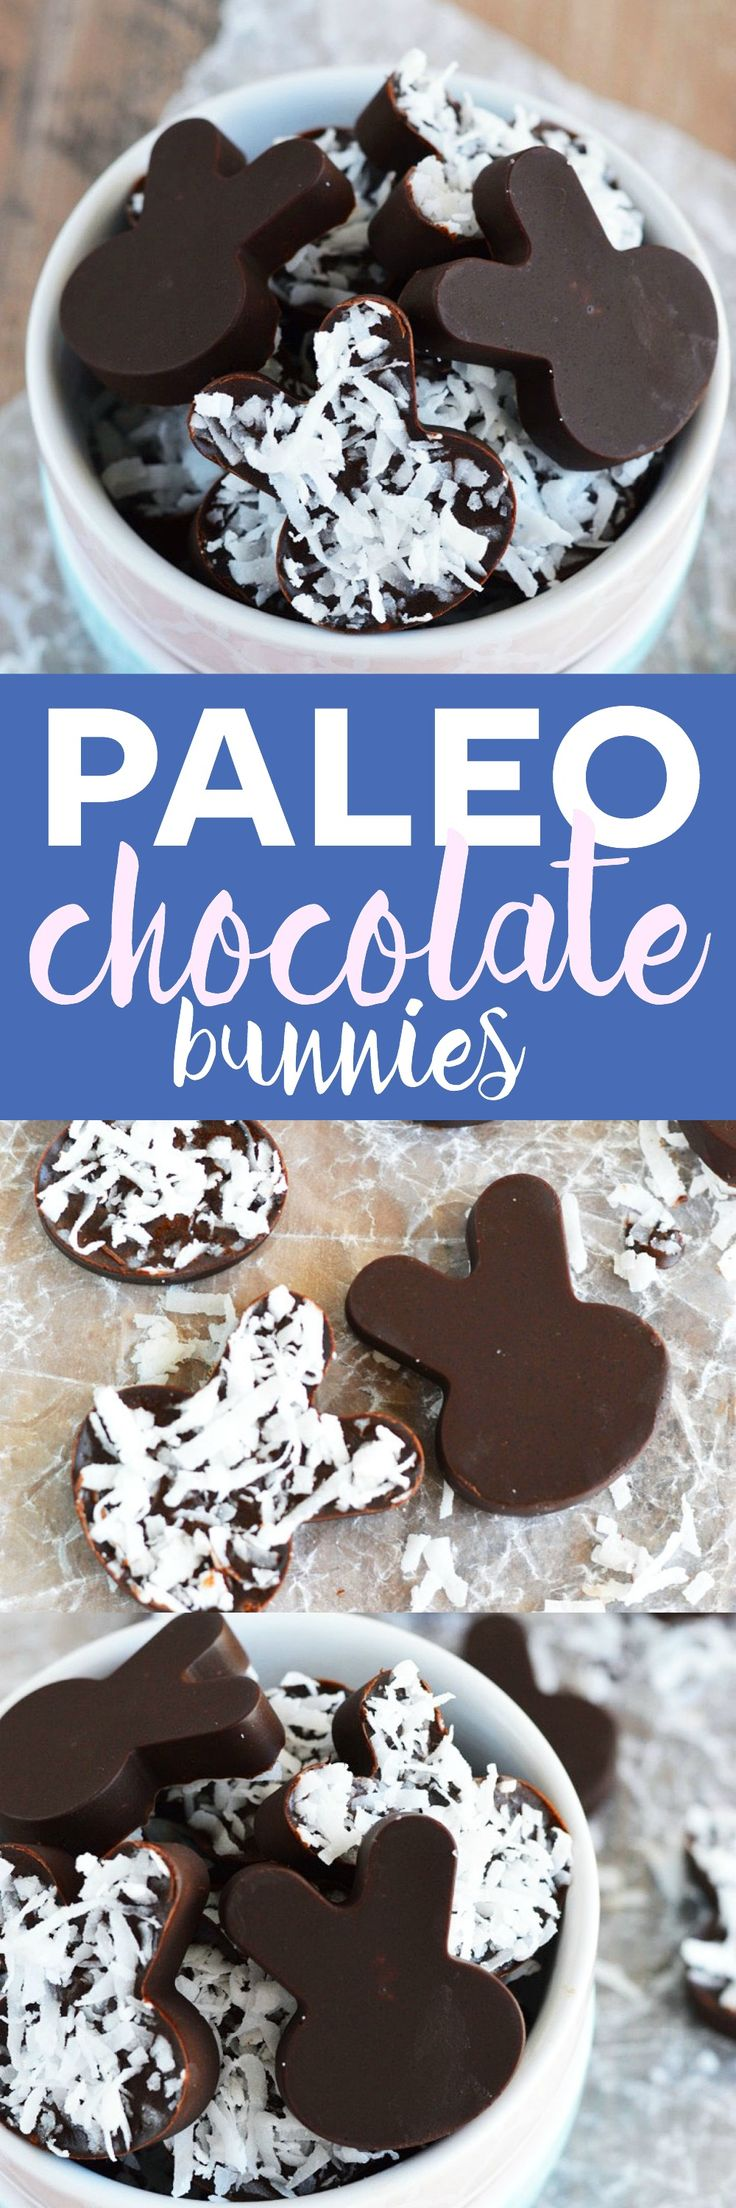 Simple paleo chocolate bunnies are perfect for fun Easter treats. They're quick and easy to make. Use any shape mold you want for chocolates year-round.